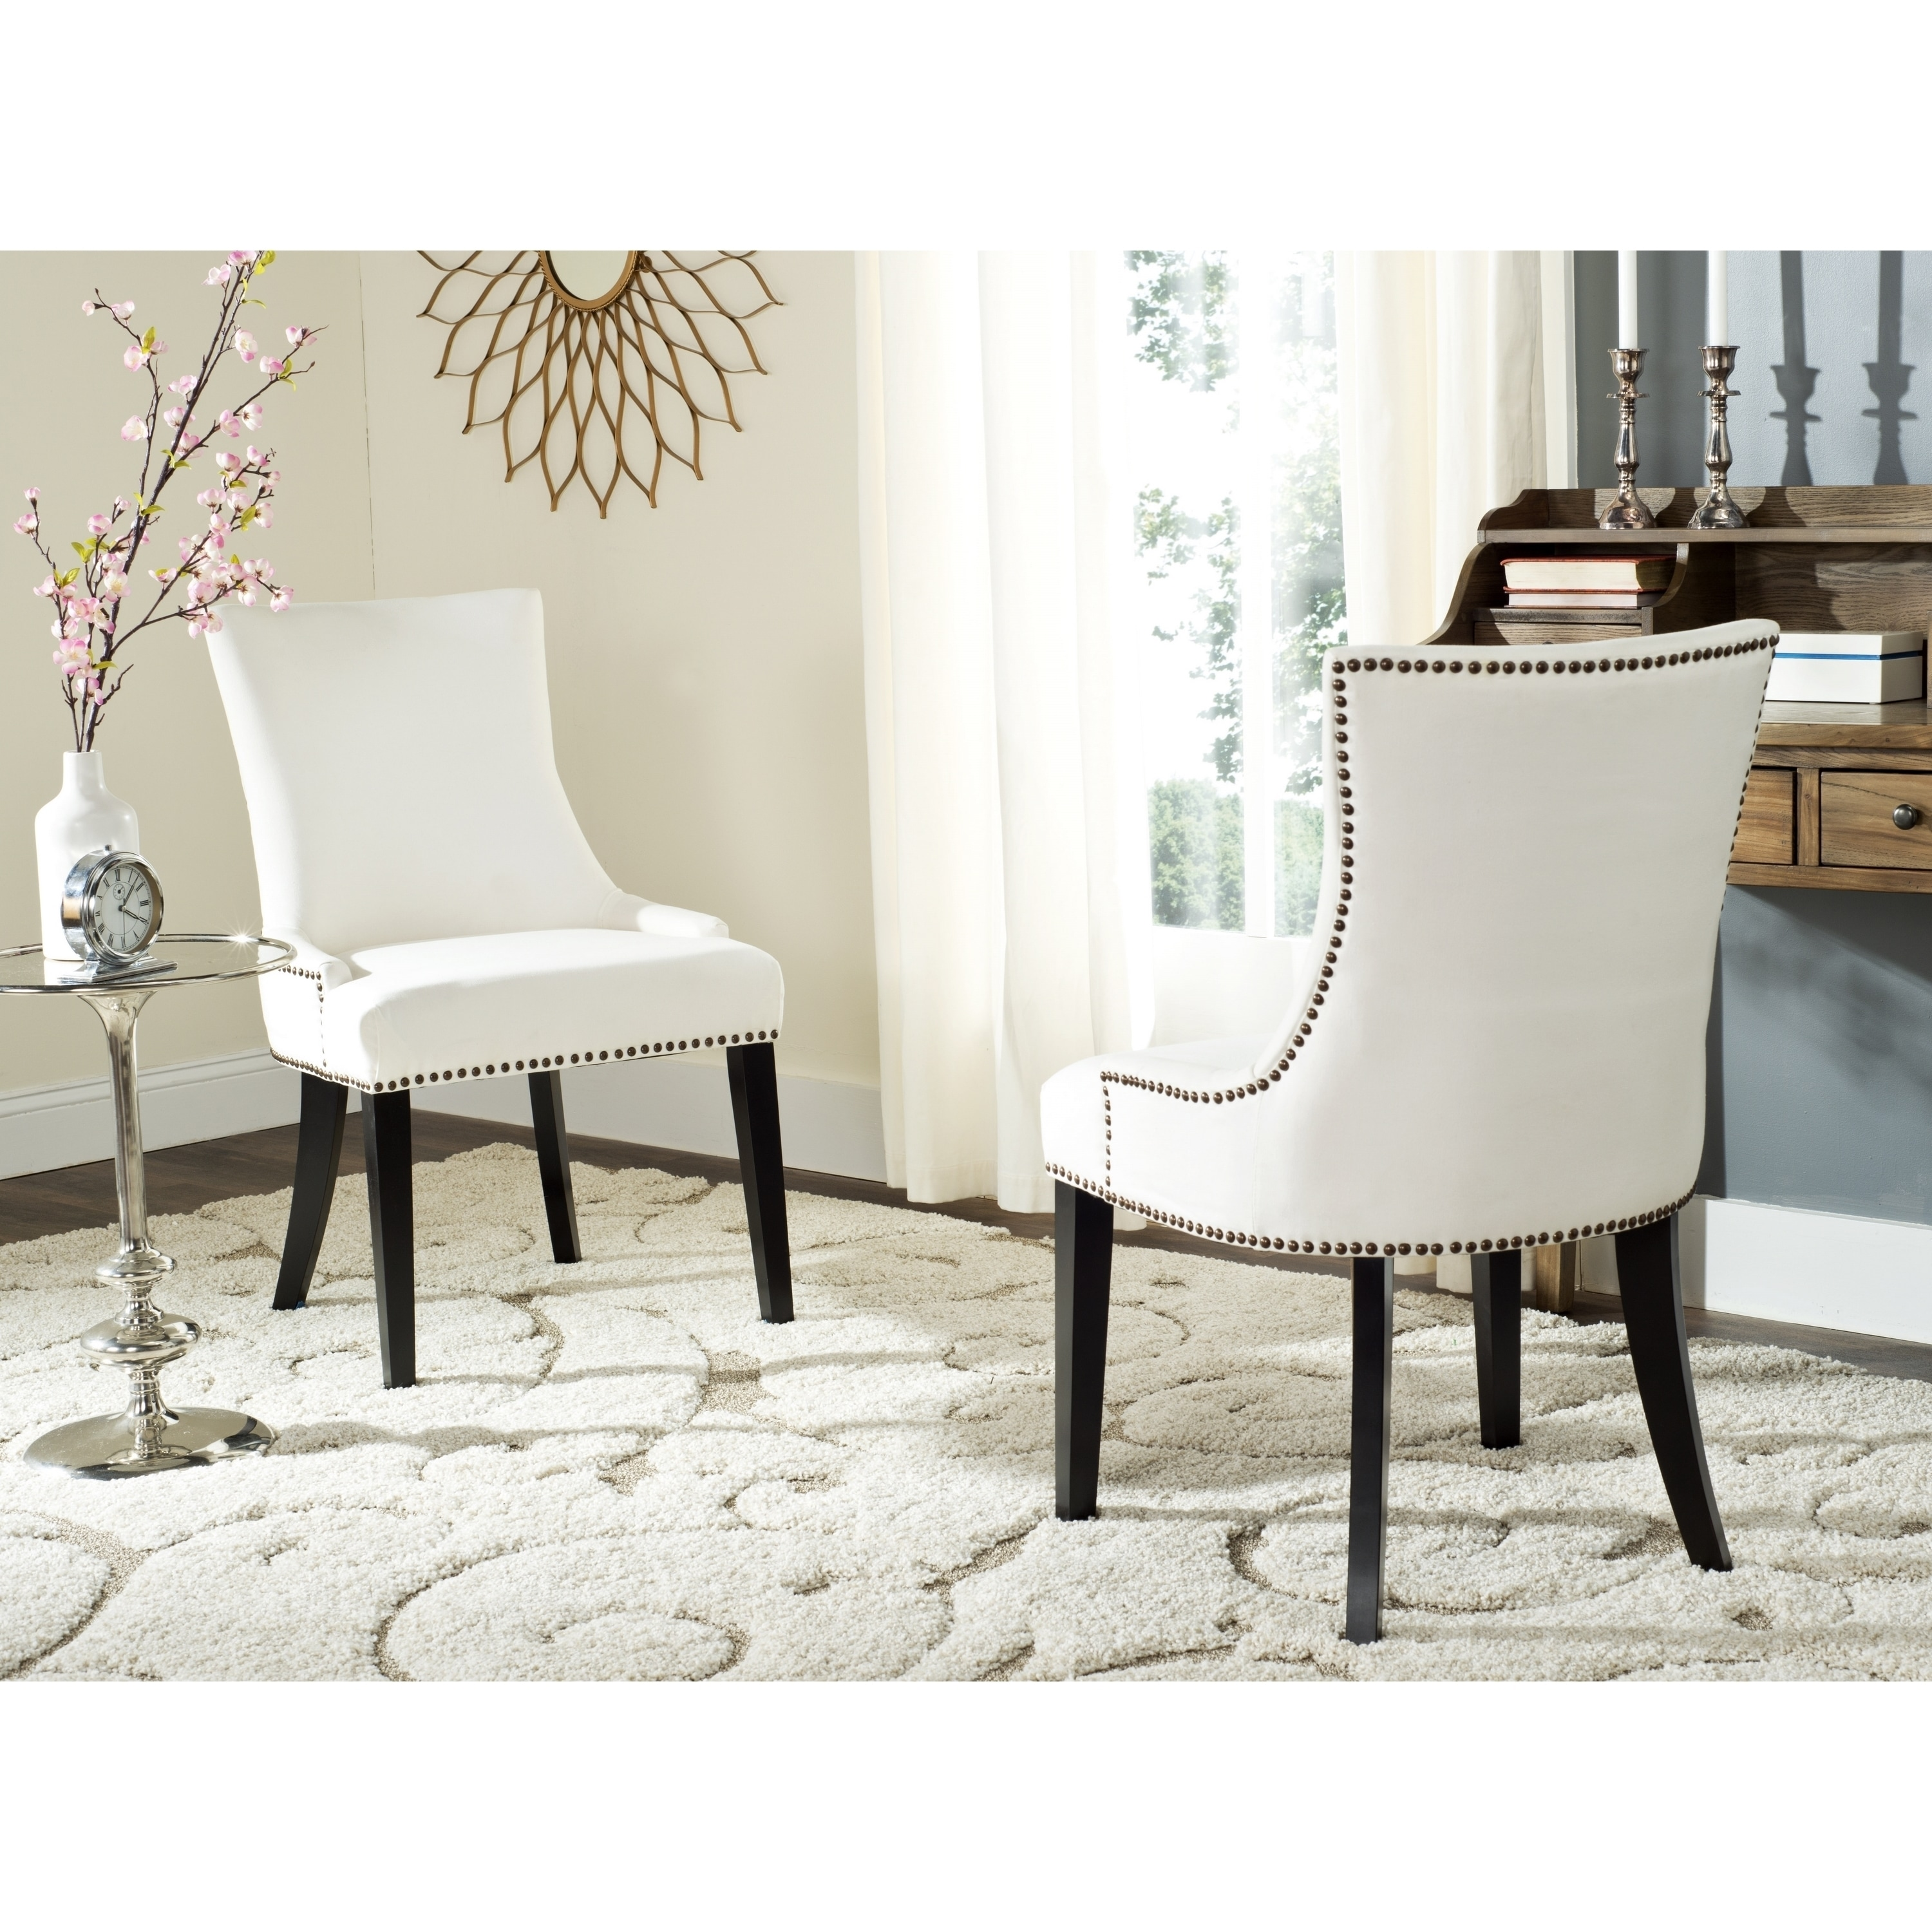 White Dining Chairs Safavieh En Vogue Dining Lester White Dining Chairs Set Of 2